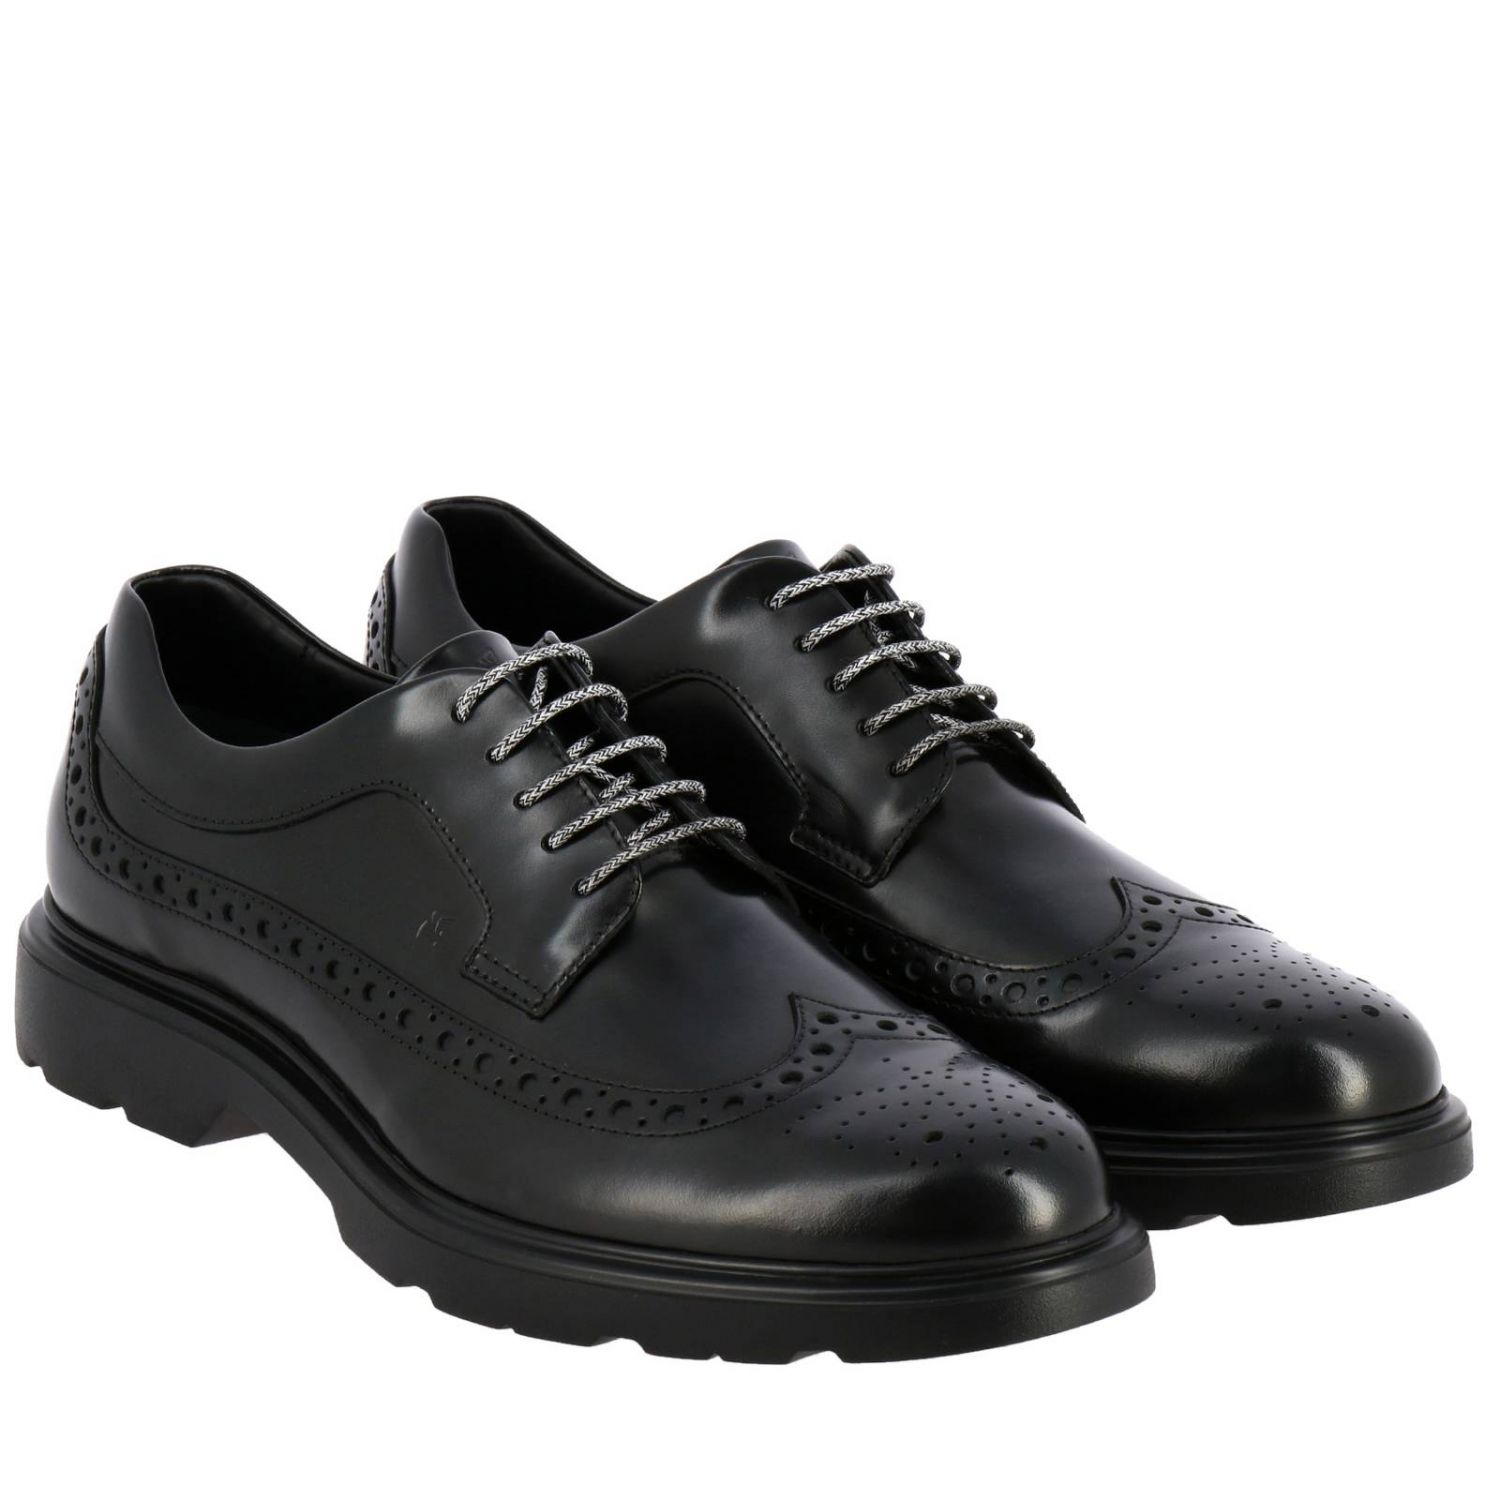 Route 393 Hogan derby in brushed leather with memory sole and brogue motif